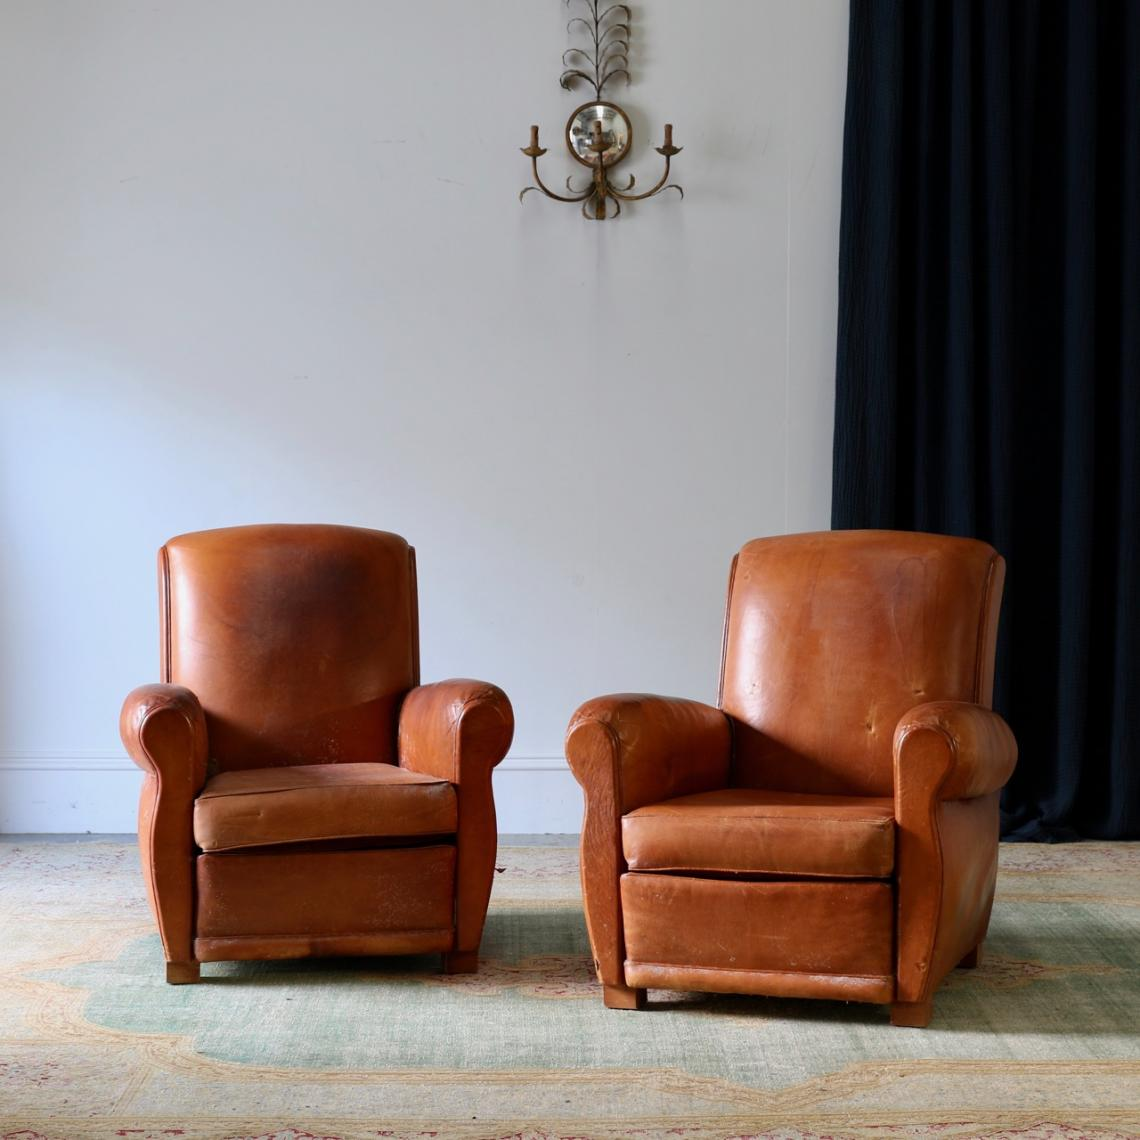 115-85 - Pair of Leather Armchairs